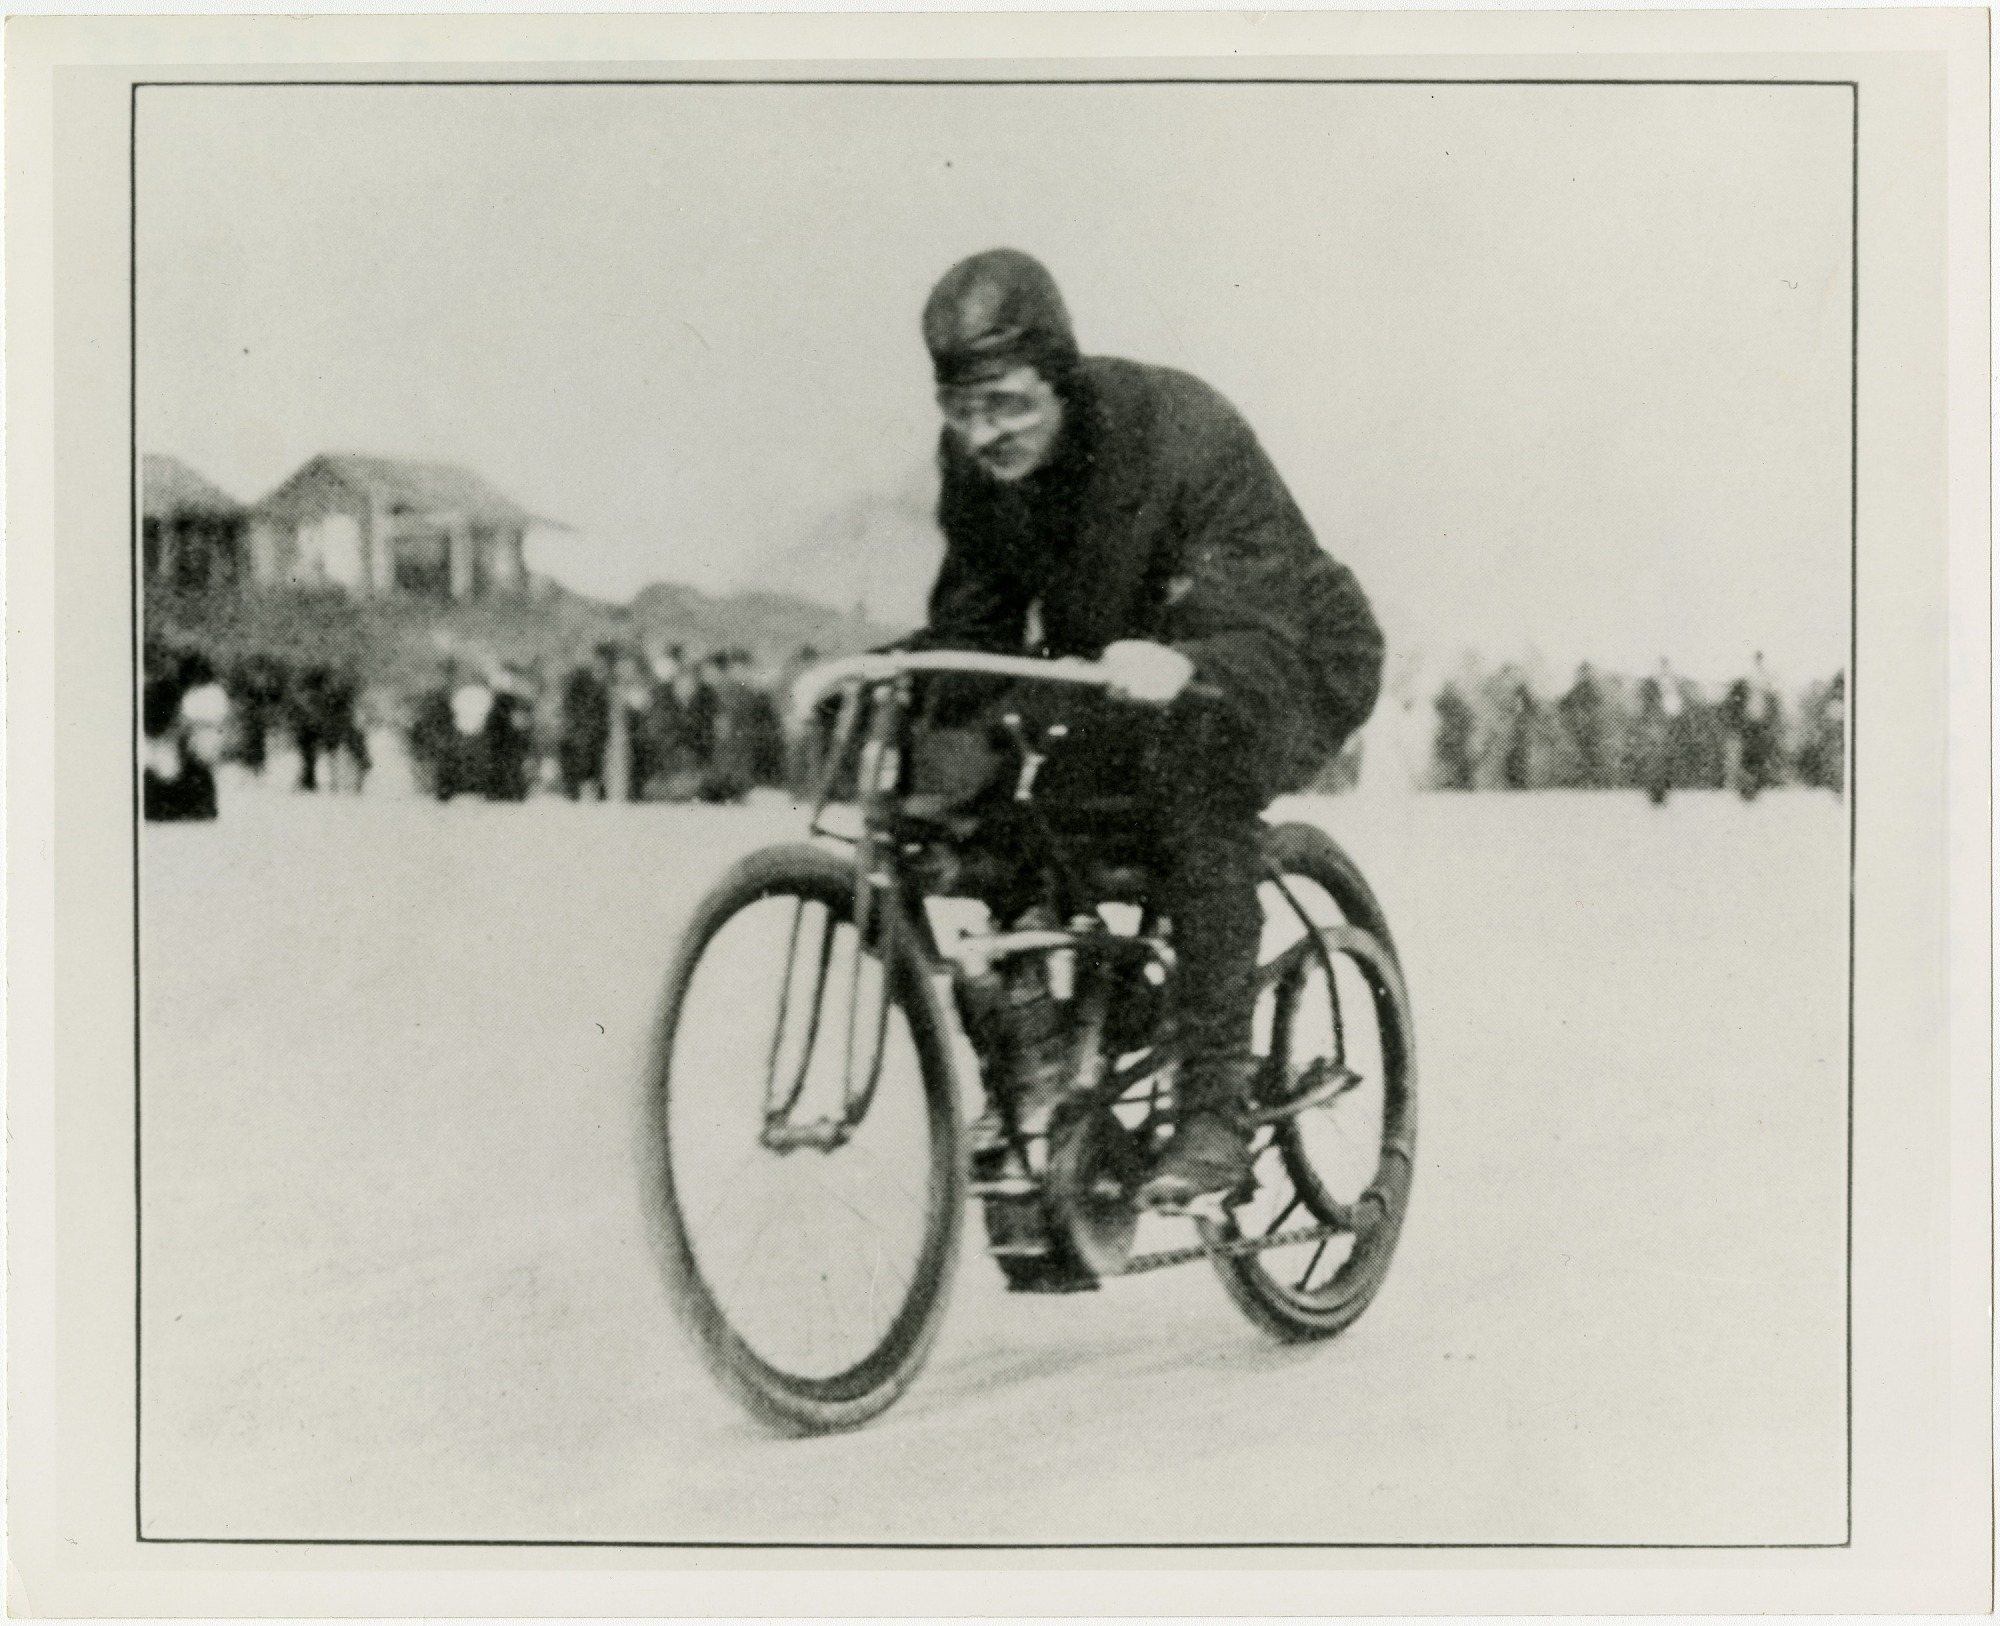 Wearing a leather helmet, Glenn Curtiss hunches over the handle bars of his experimental motorcycle as he rides at record-breaking speeds, January 24, 1907.